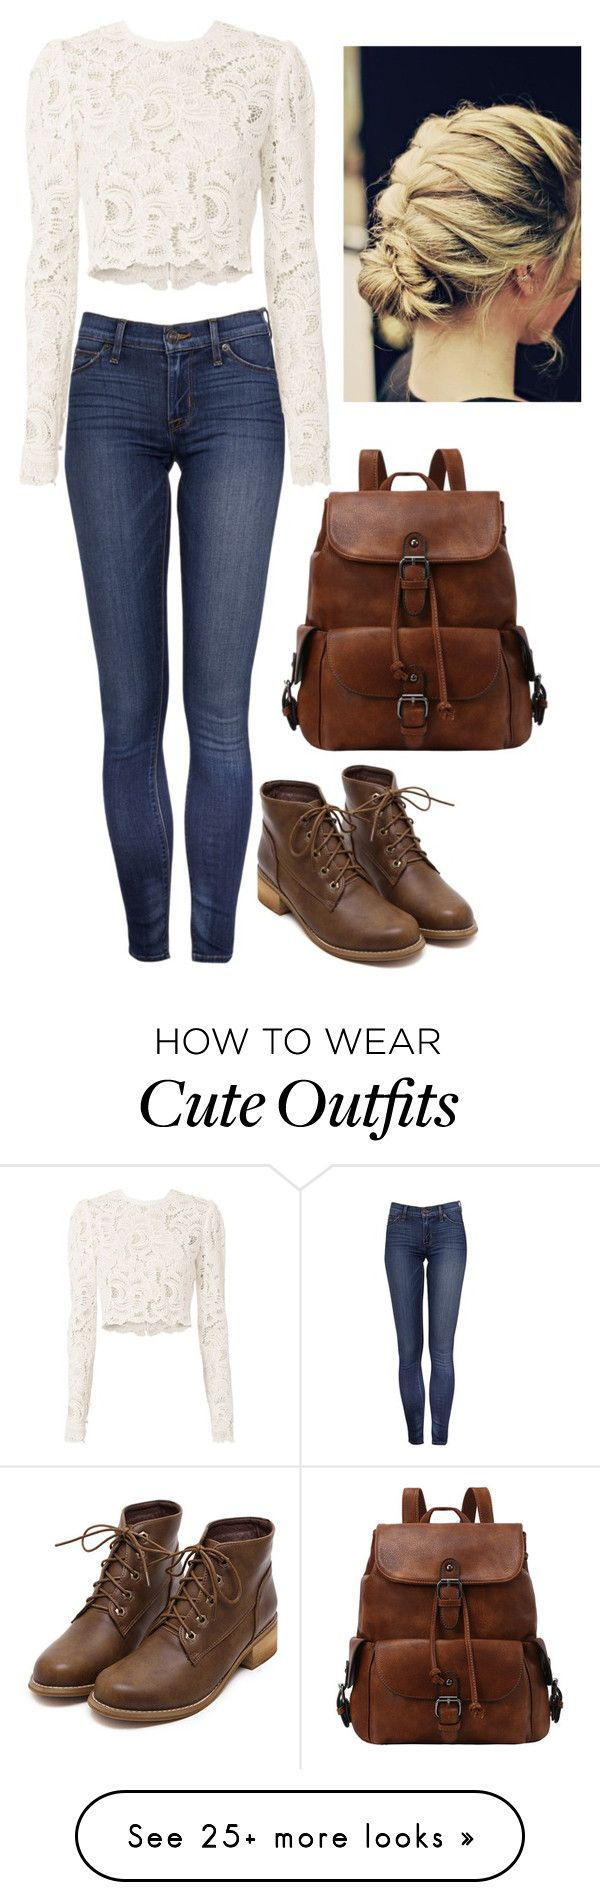 """Cute Outfit"" by maddieandmaddy on Polyvore featuring A.L.C."